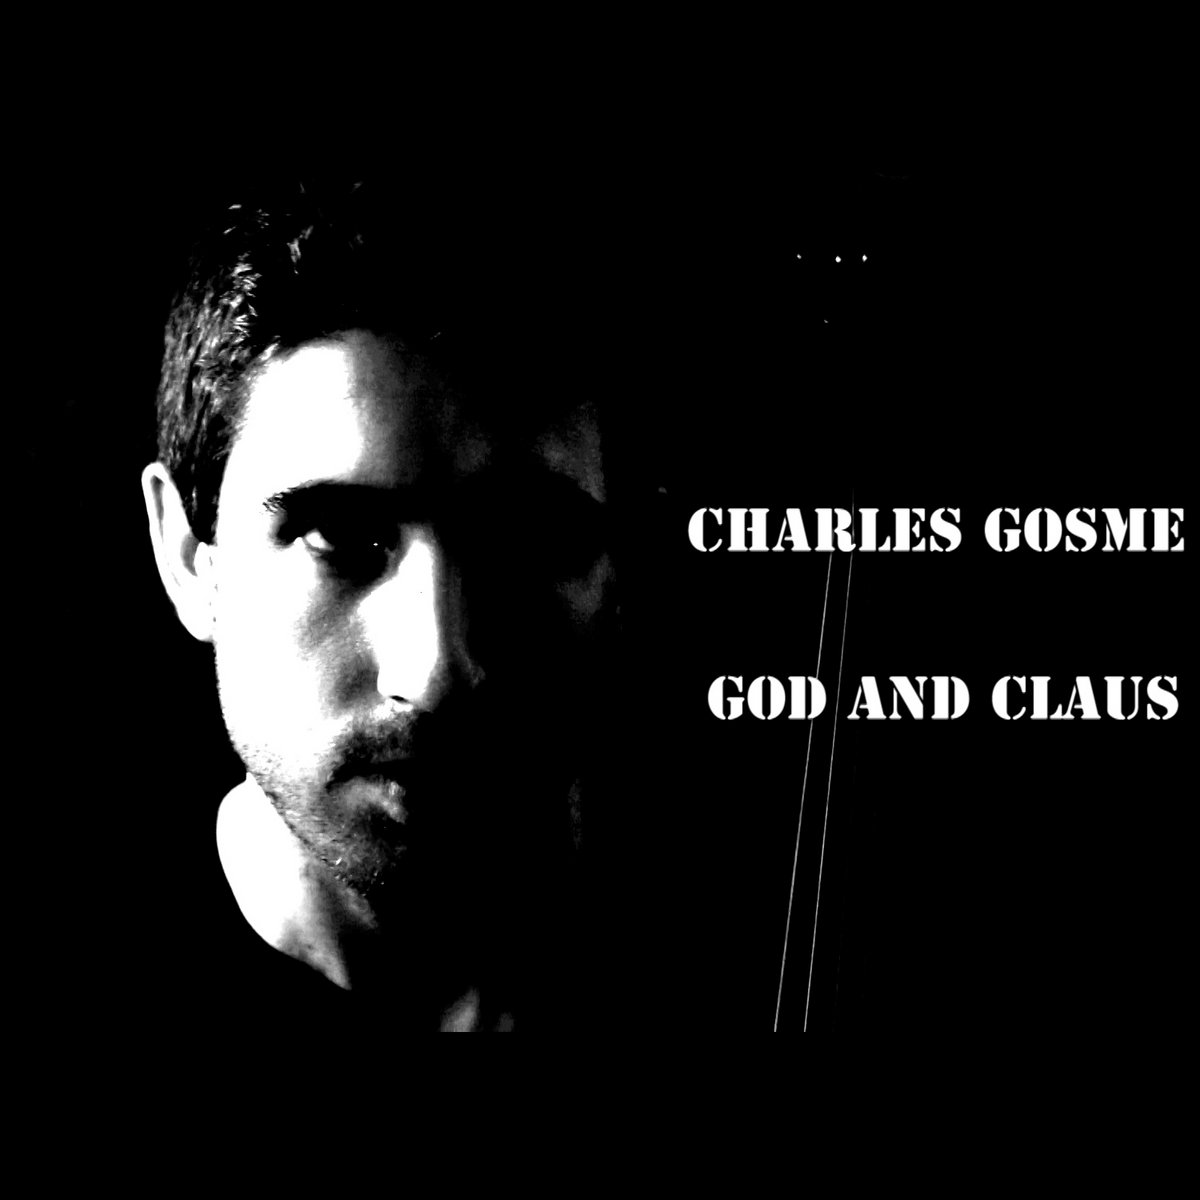 God and Claus by Charles Gosme